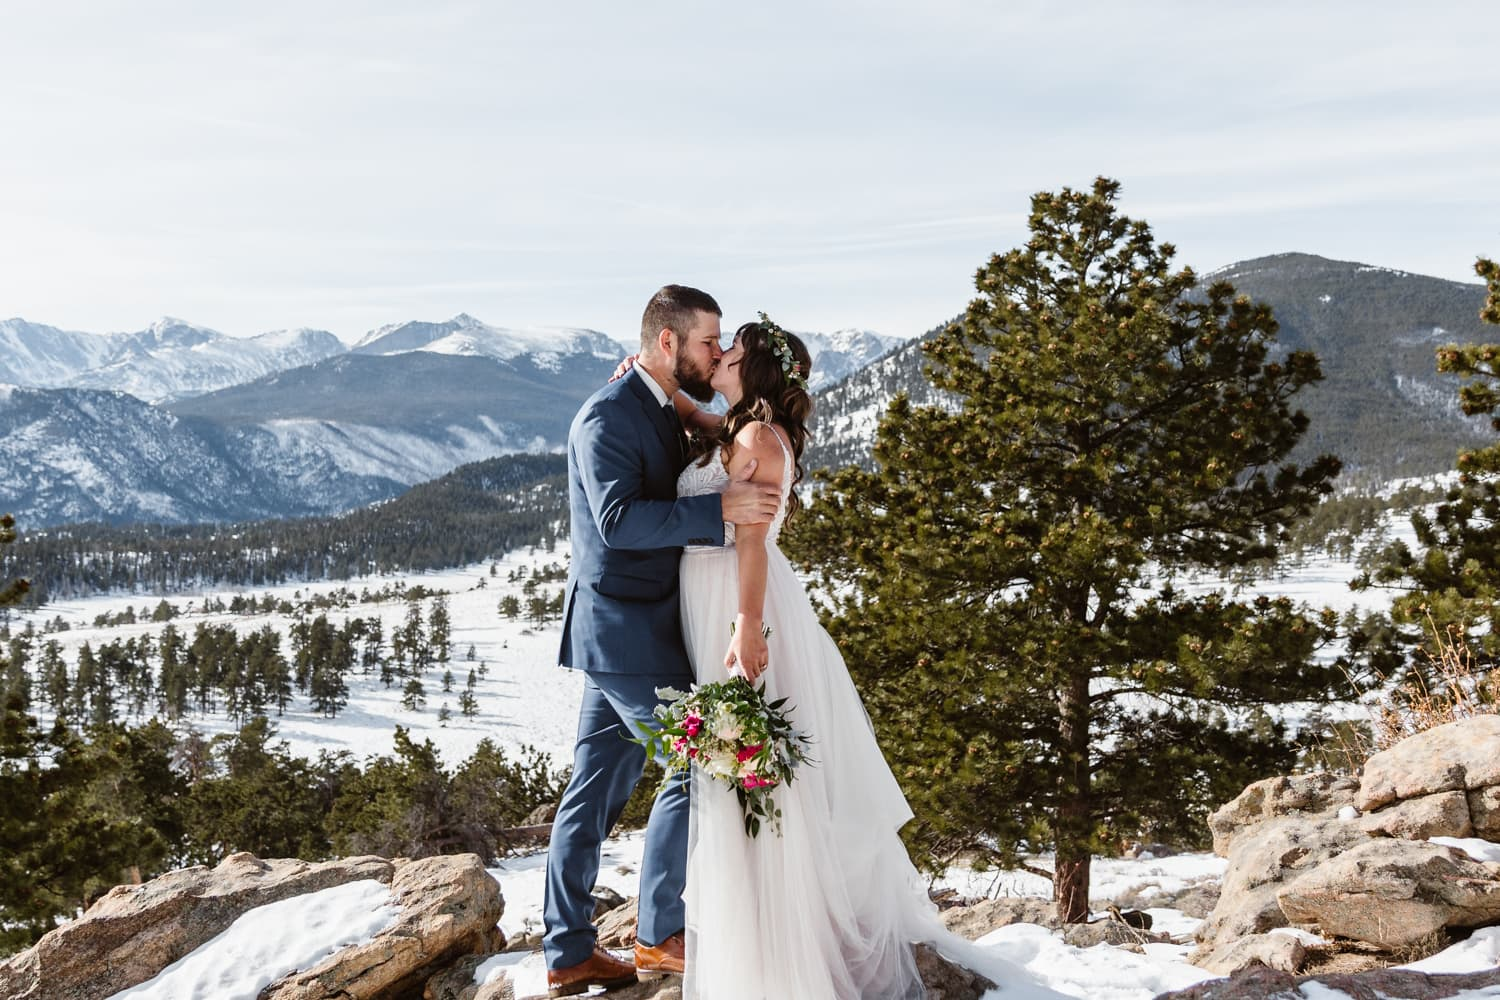 Announcing Your Elopement - Rocky Mountain National Park Elopement